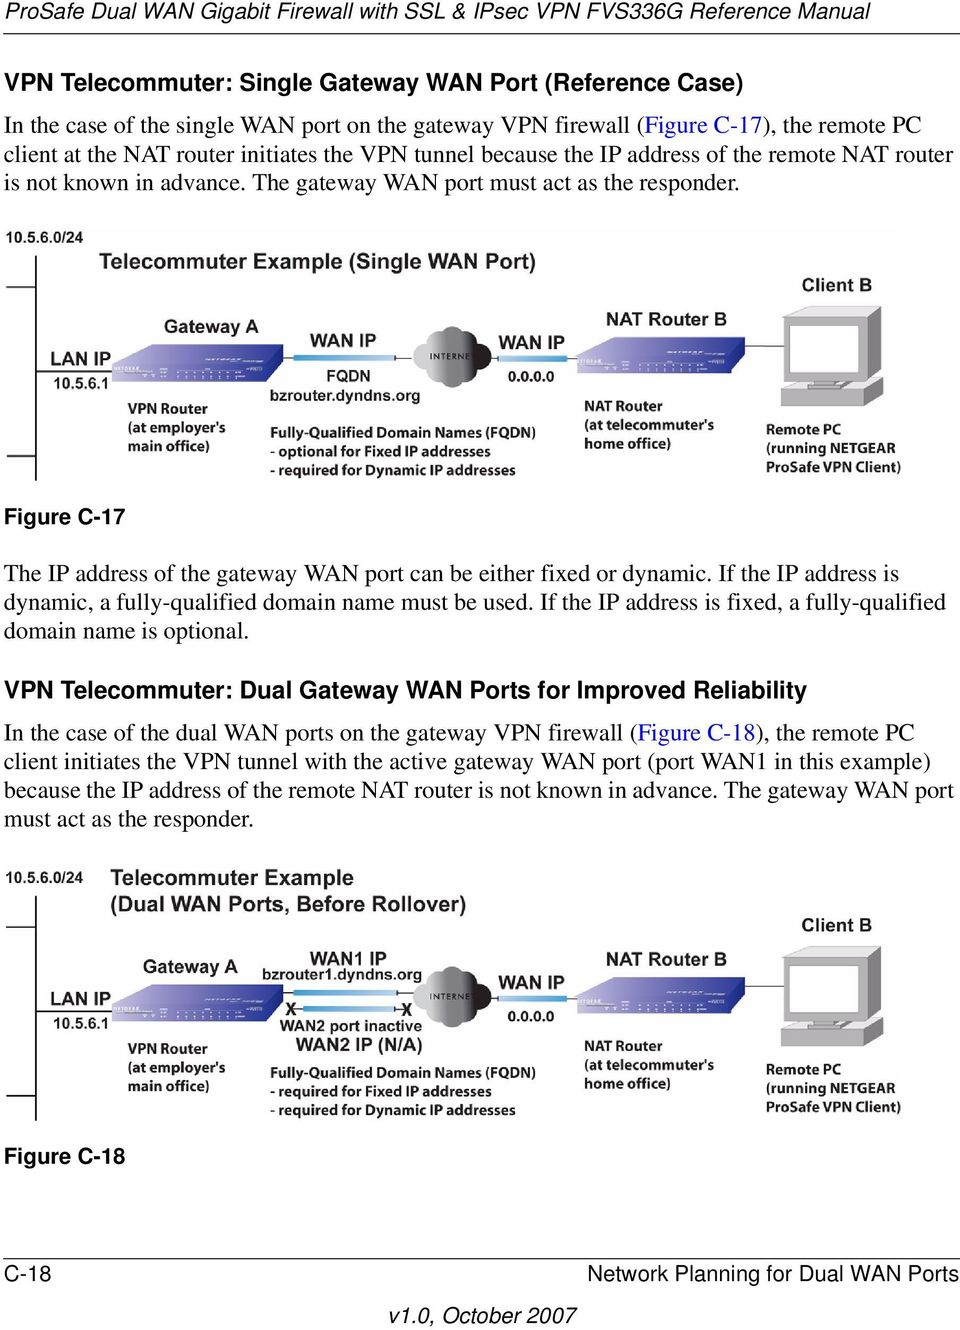 Figure C-17 The IP address of the gateway WAN port can be either fixed or dynamic. If the IP address is dynamic, a fully-qualified domain name must be used.